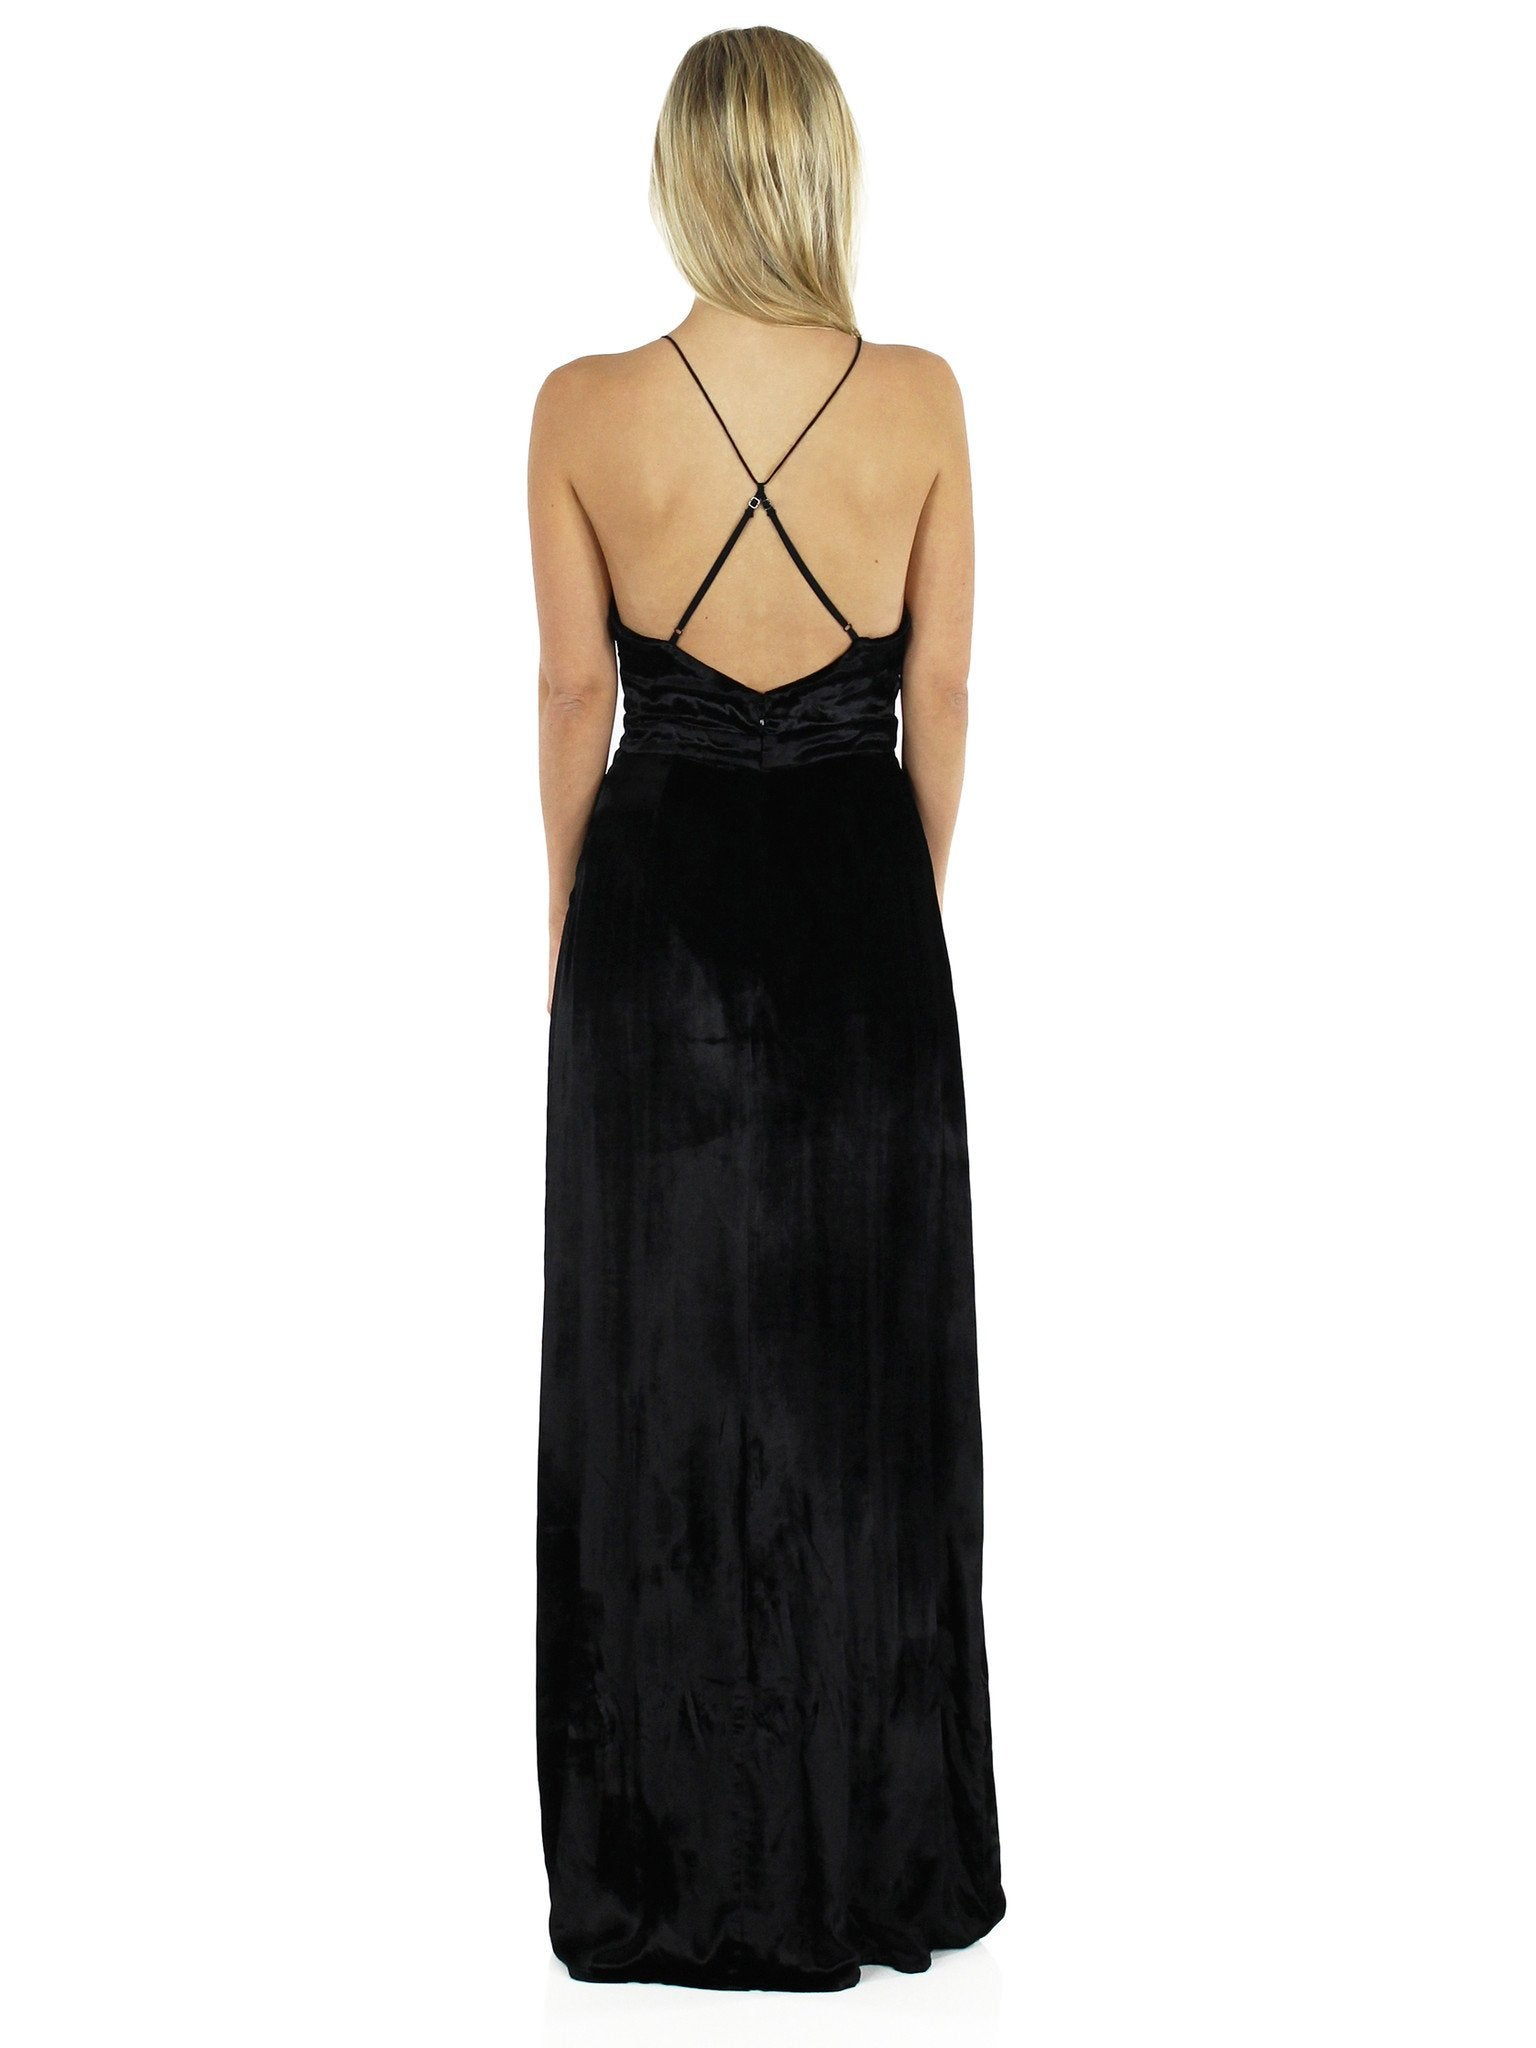 Women wearing a dress rental from The Jetset Diaries called Velvet Saskia Maxi Dress